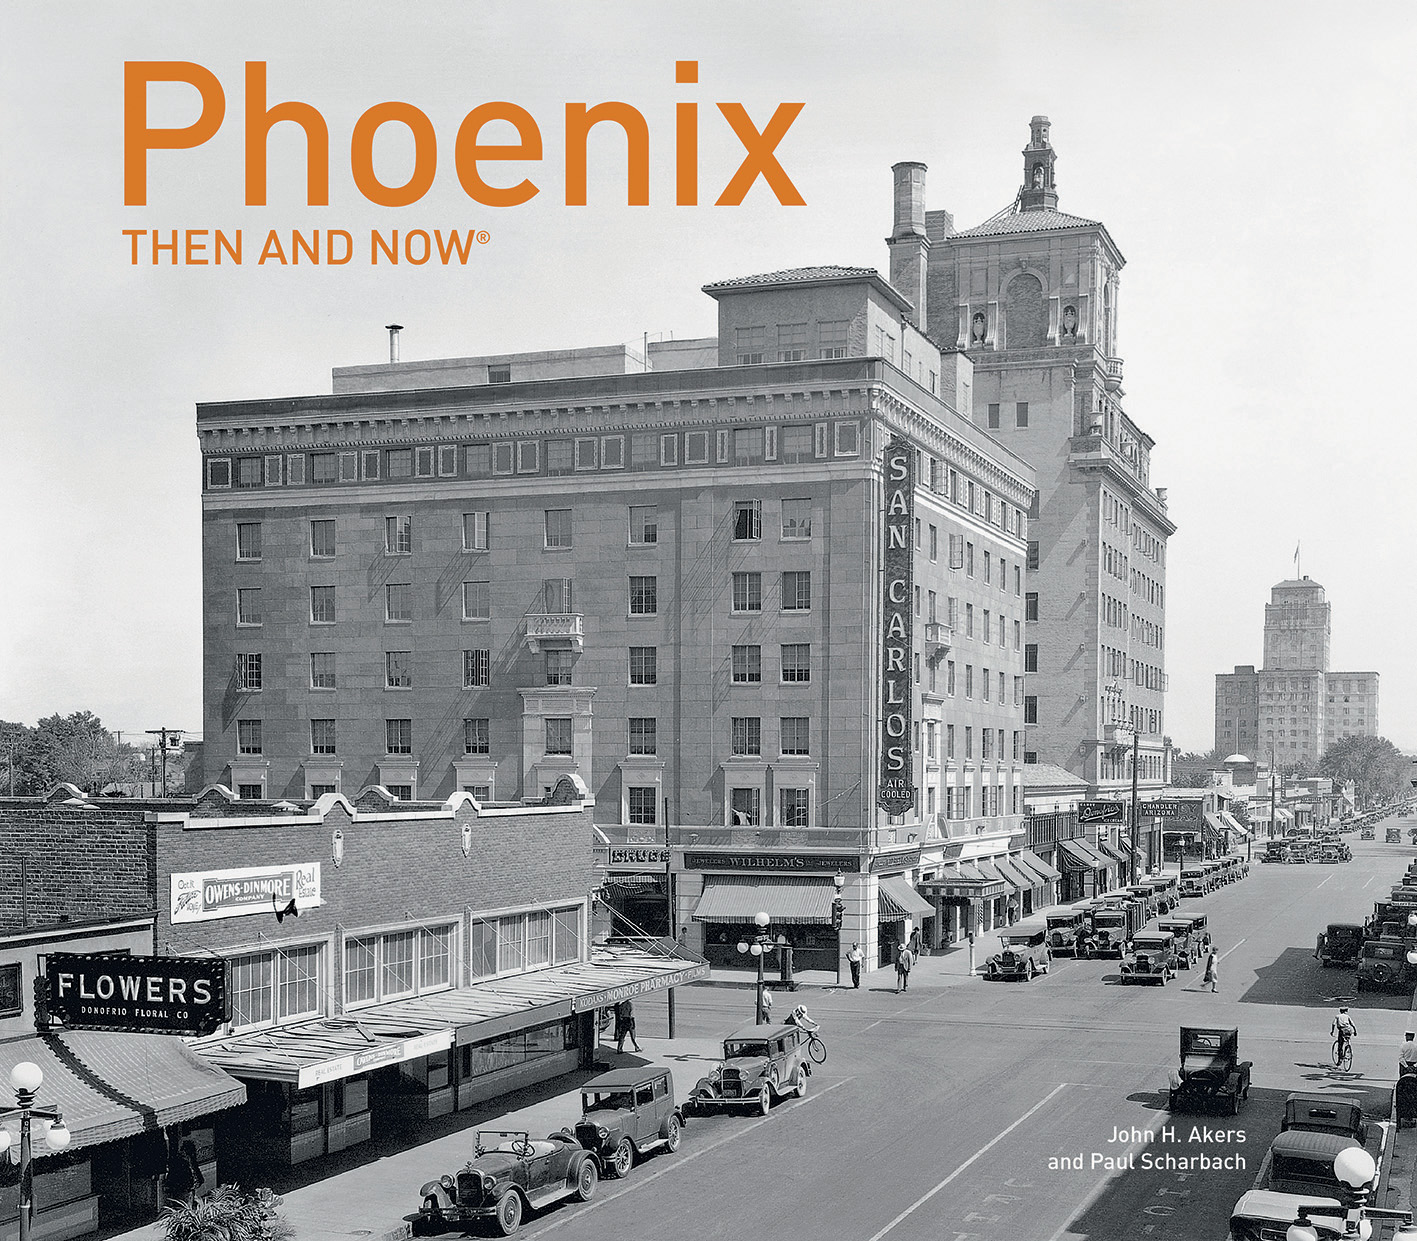 Phoenix Then and Now®